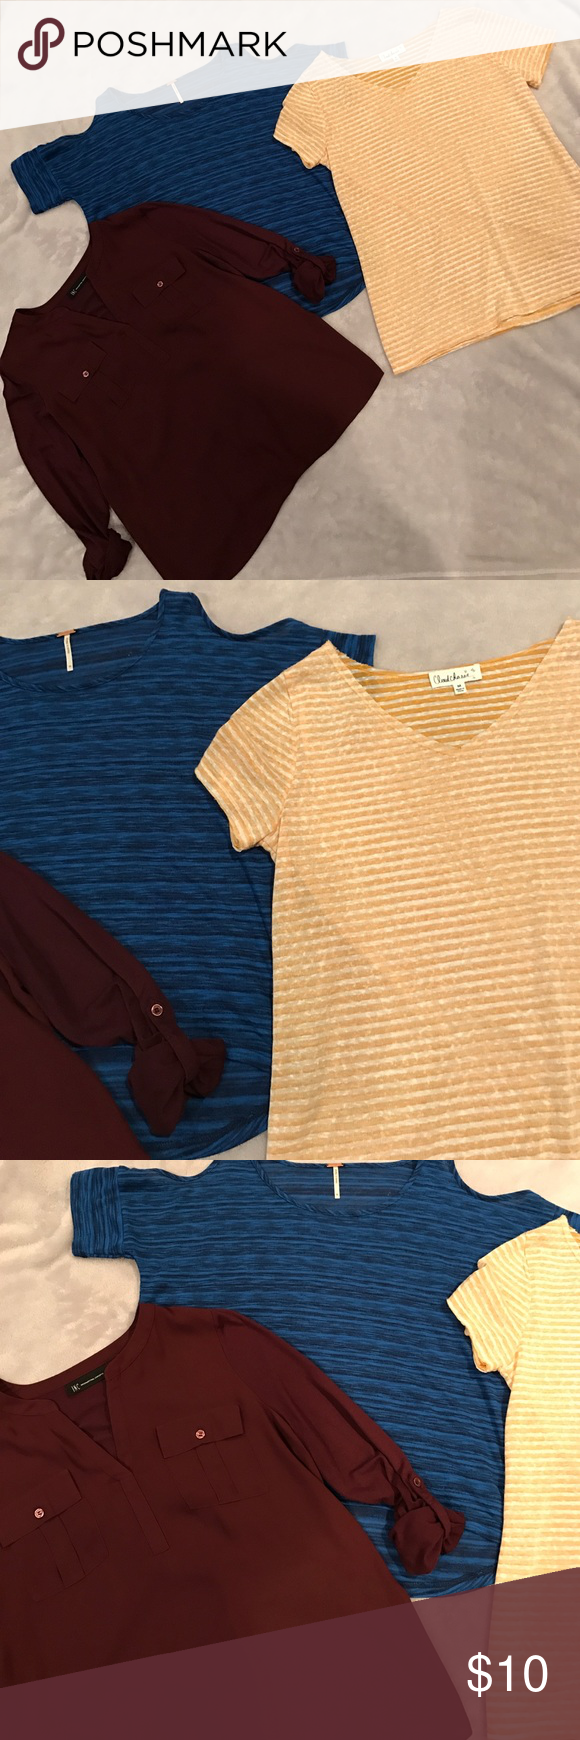 Bundle of 3 size M tops 🛍🛍 3 tops 1 short sleeve mustard stripe ..one INc plum color roll cuff ..one blue cold shoulder ..great shape 🛍🛍🛍🎉🎉 Tops